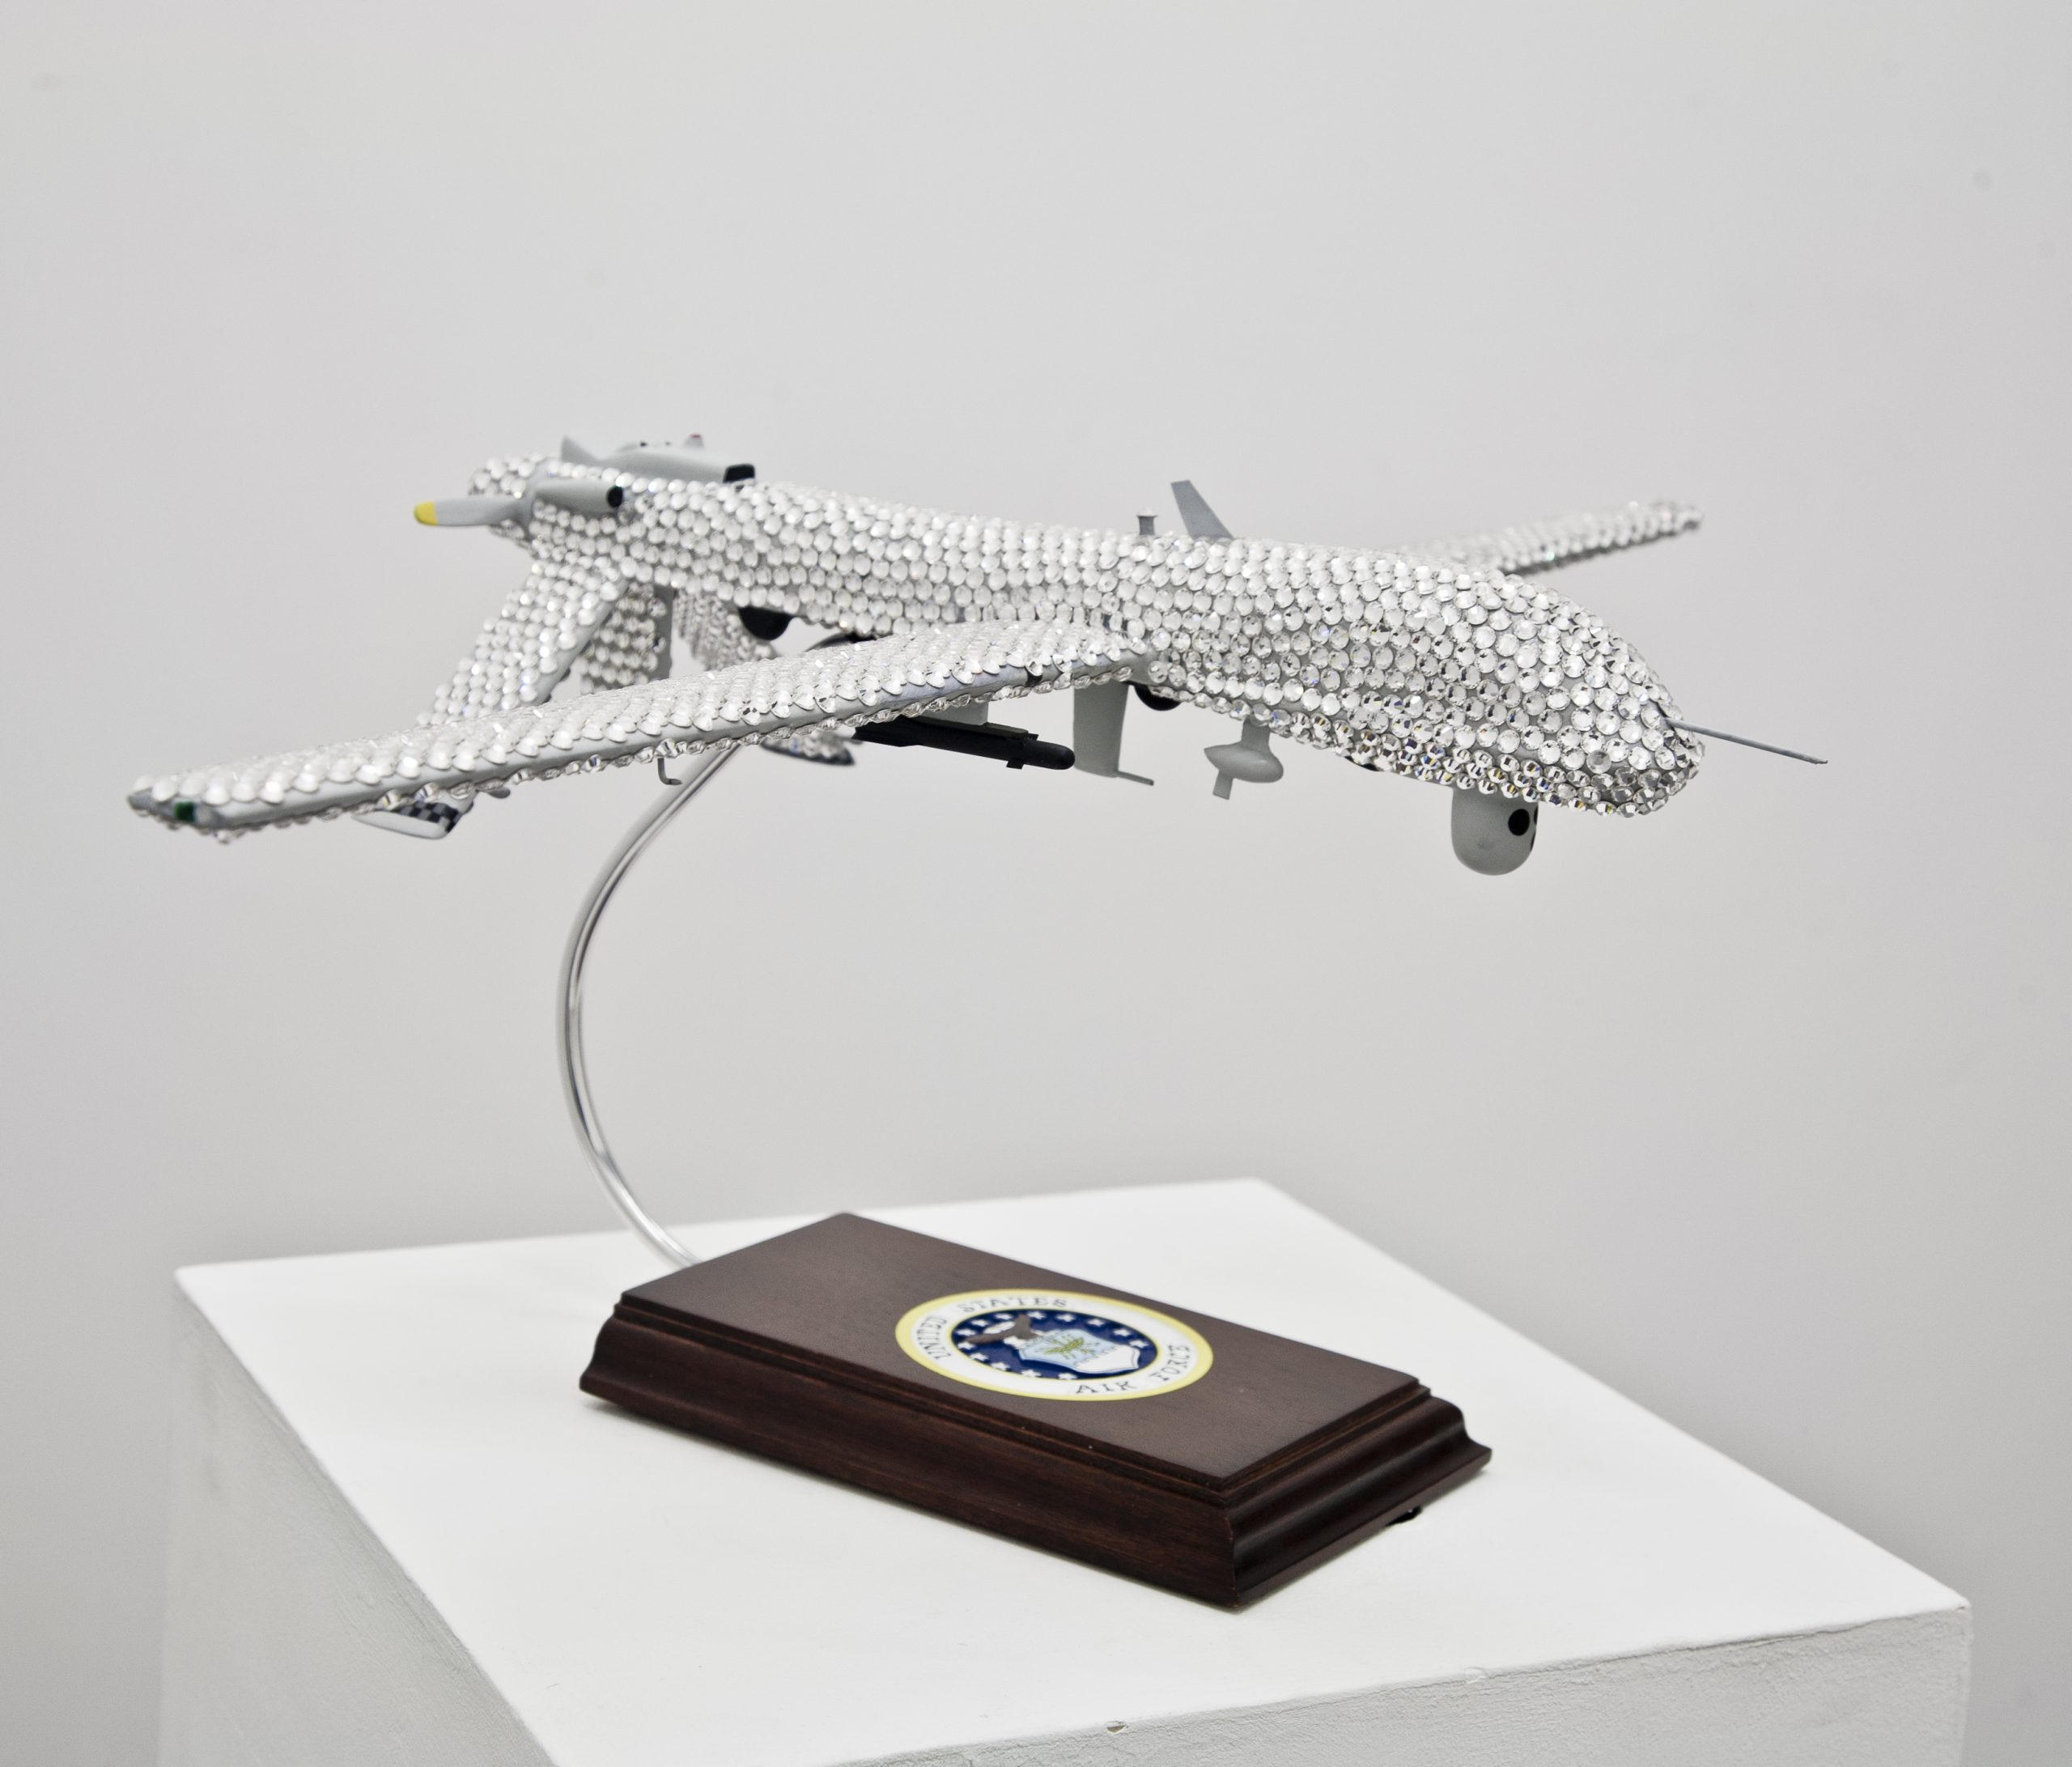 Geroge Barber The Rhinestone Drone  in The Freestone Drone  1 February - 23 March 2013  waterside contemporary http://waterside-contemporary.com info@waterside-contemporary.com  2 Clunbury Str London N1 6TT +442034170159